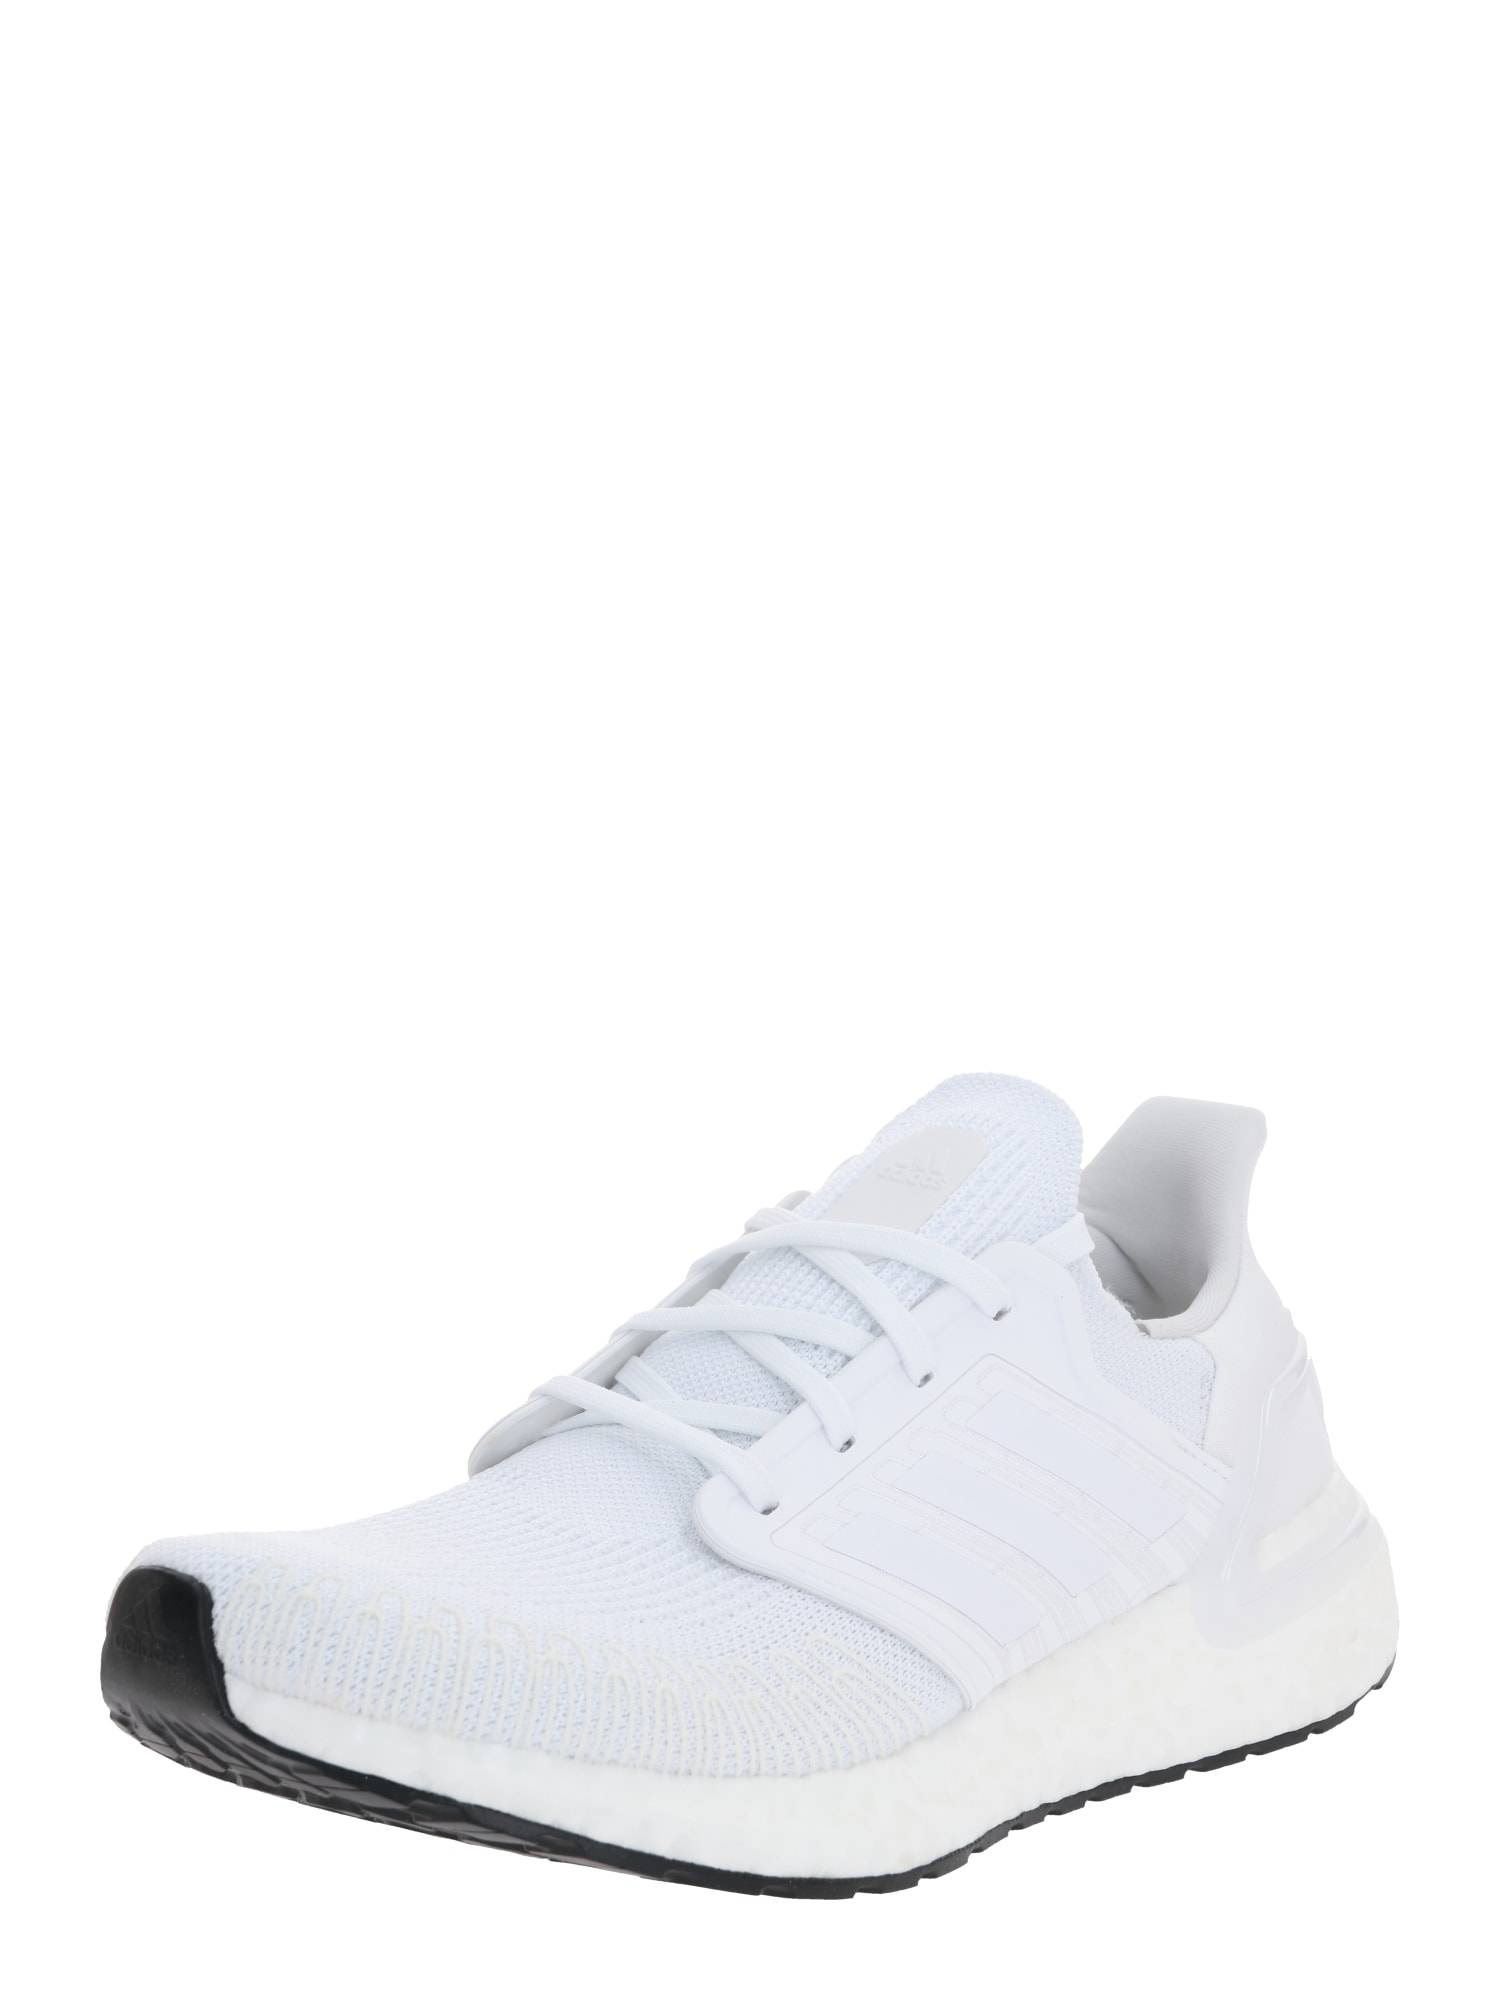 ADIDAS PERFORMANCE Chaussure de course 'Ultraboost 20'  - Blanc - Taille: 38 - male